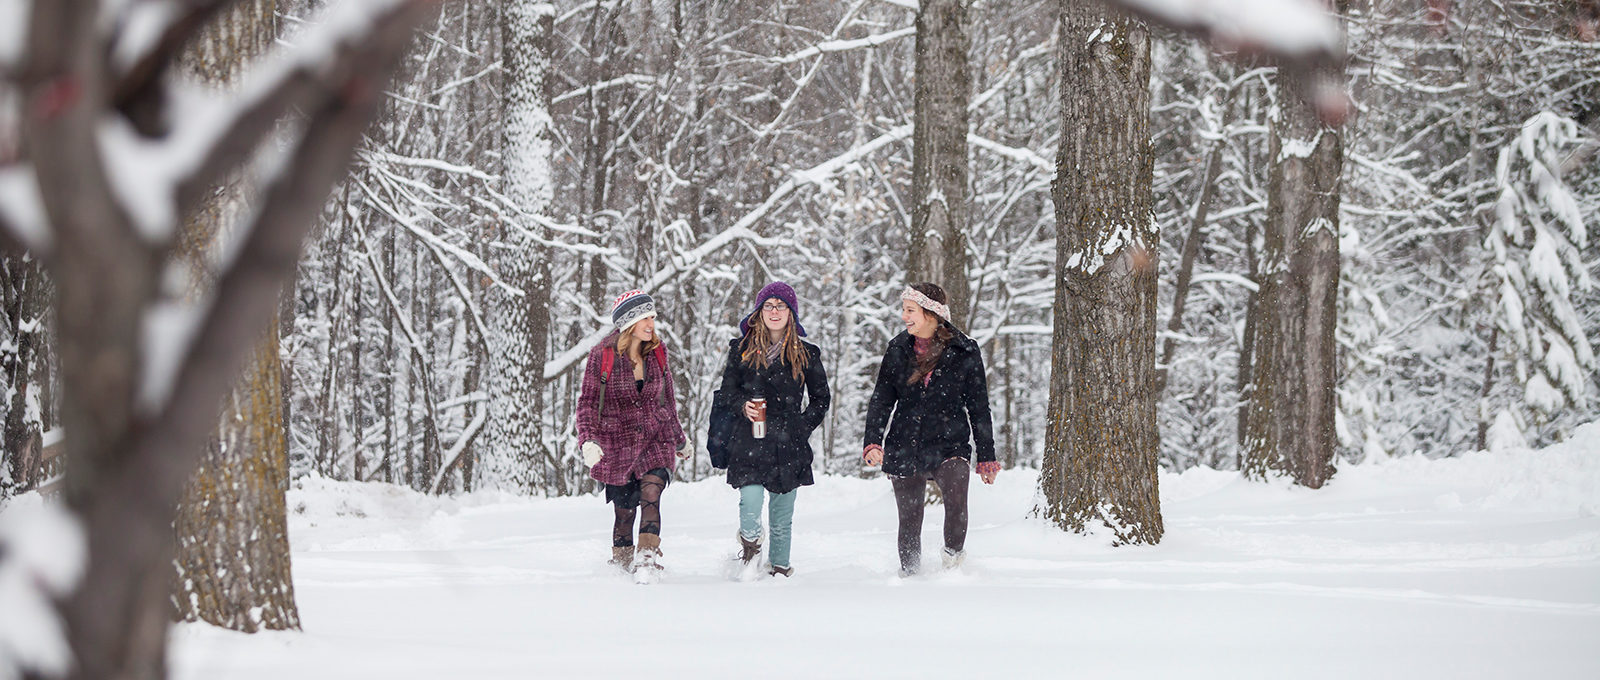 girls walking in snow